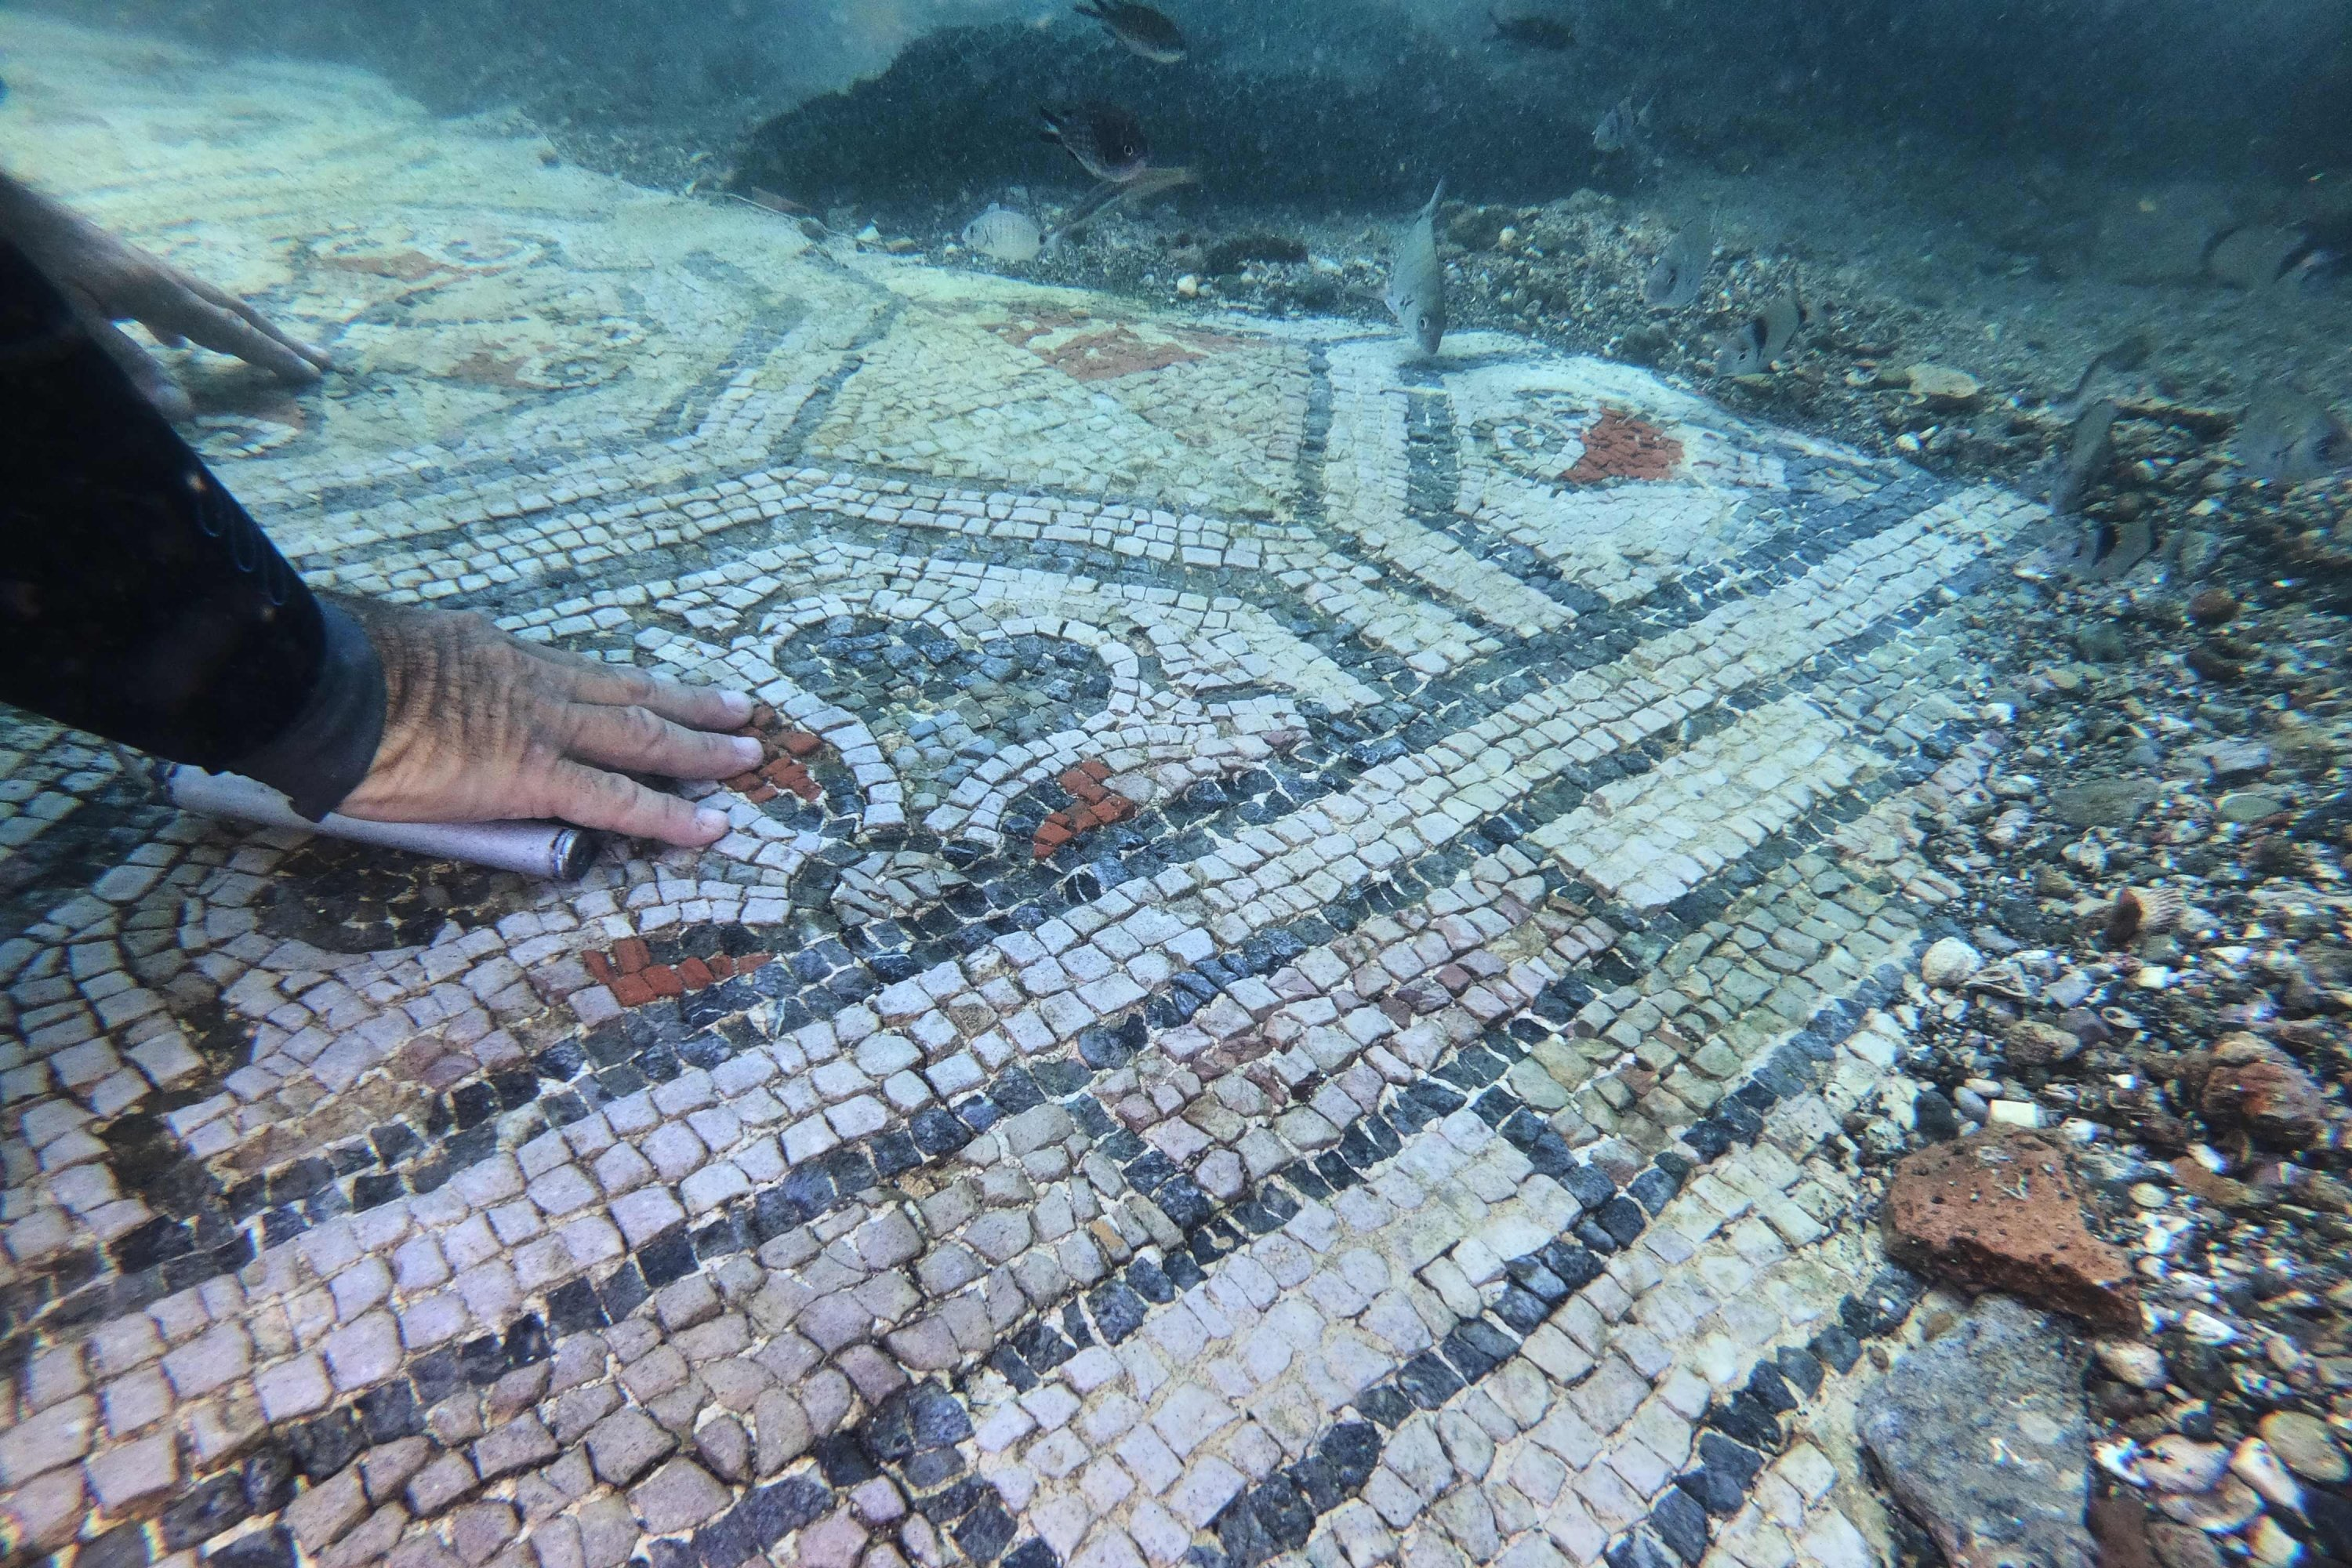 A dive guide shows tourists a mosaic from Terme del Lacus, in the submerged ancient Roman city of Baiae, Pozzuoli near Naples, Italy, Aug. 18, 2021. (AFP Photo)